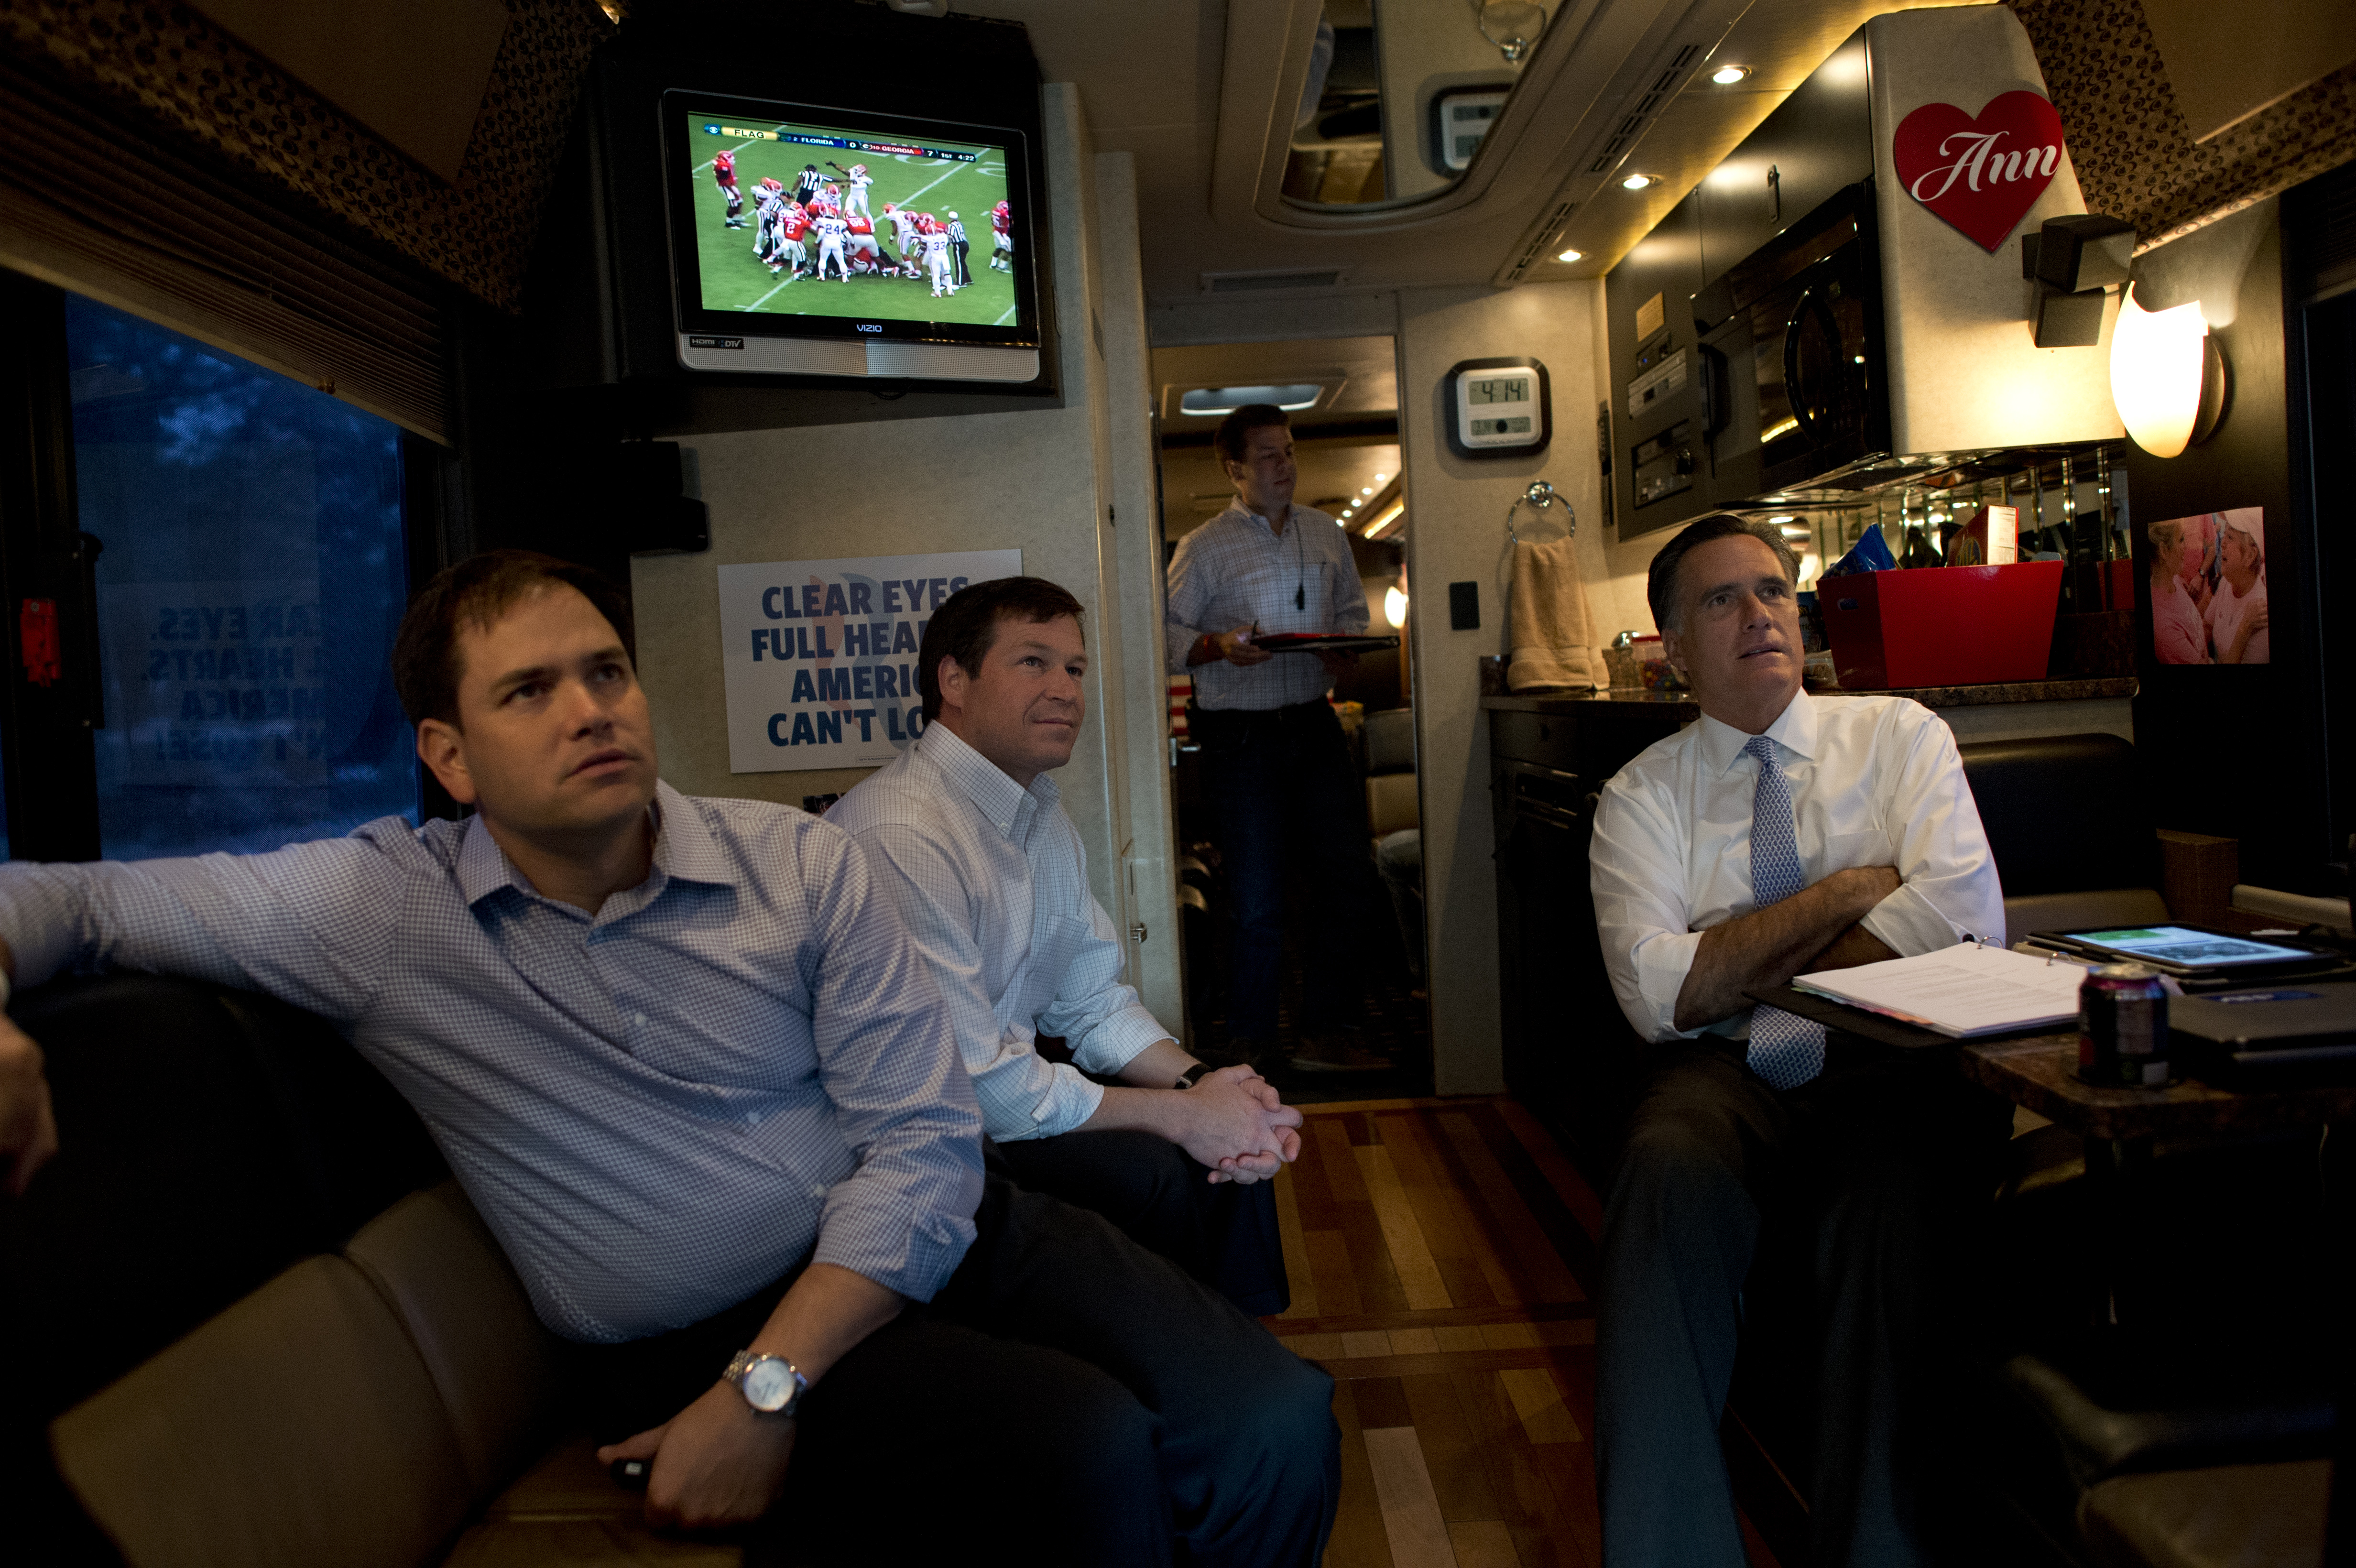 Senator Marco Rubio watches football with Mitt Romney and Congressman Connie Mack on Romney's campaign bus in 2012. (Getty)